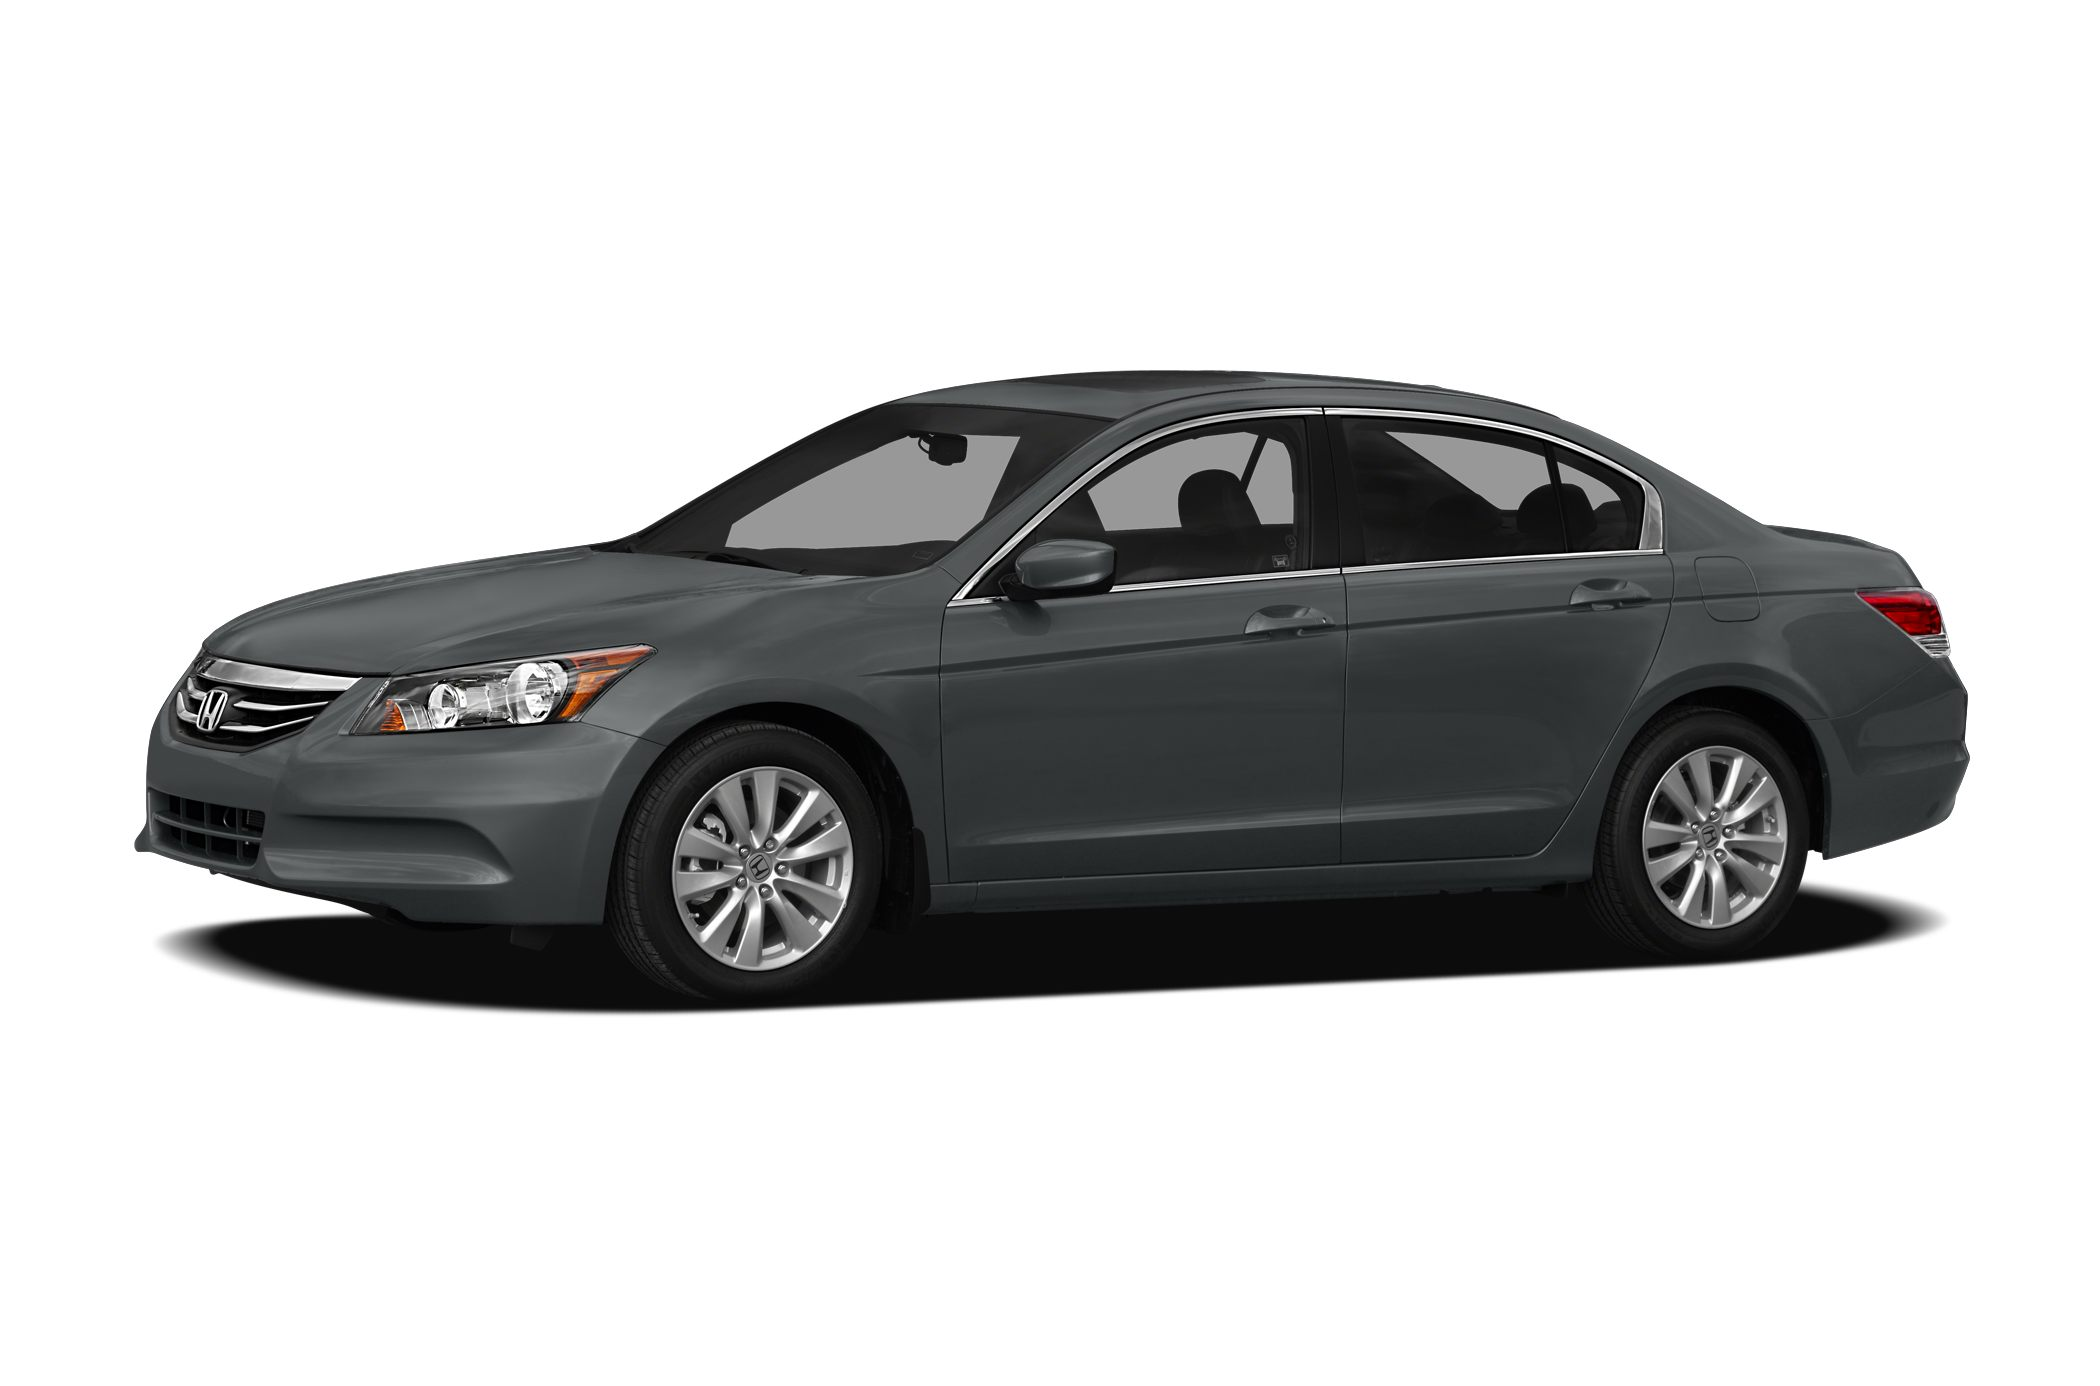 2012 Honda Accord SE Sedan for sale in North Augusta for $16,977 with 29,449 miles